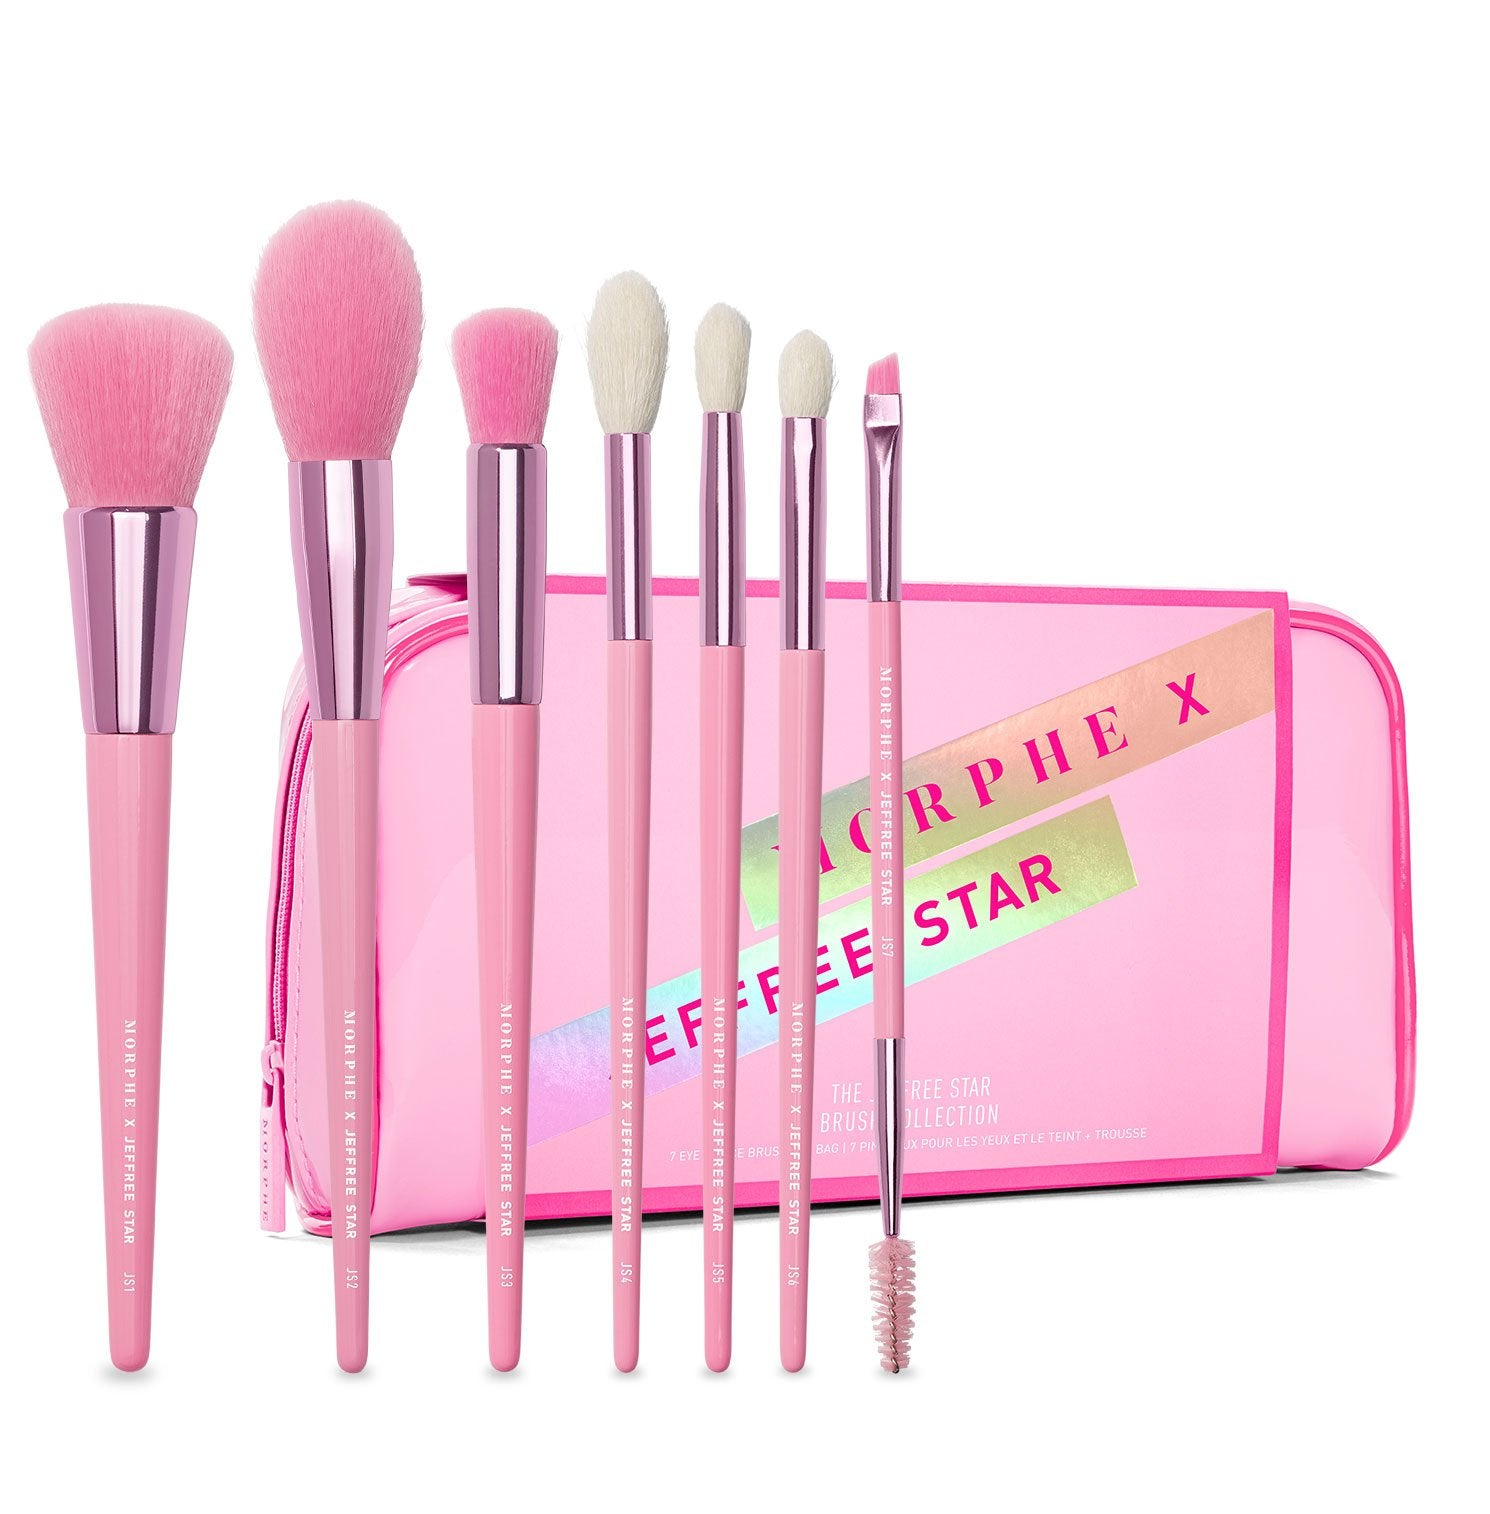 THE JEFFREE STAR EYE & FACE BRUSH COLLECTION, view larger image